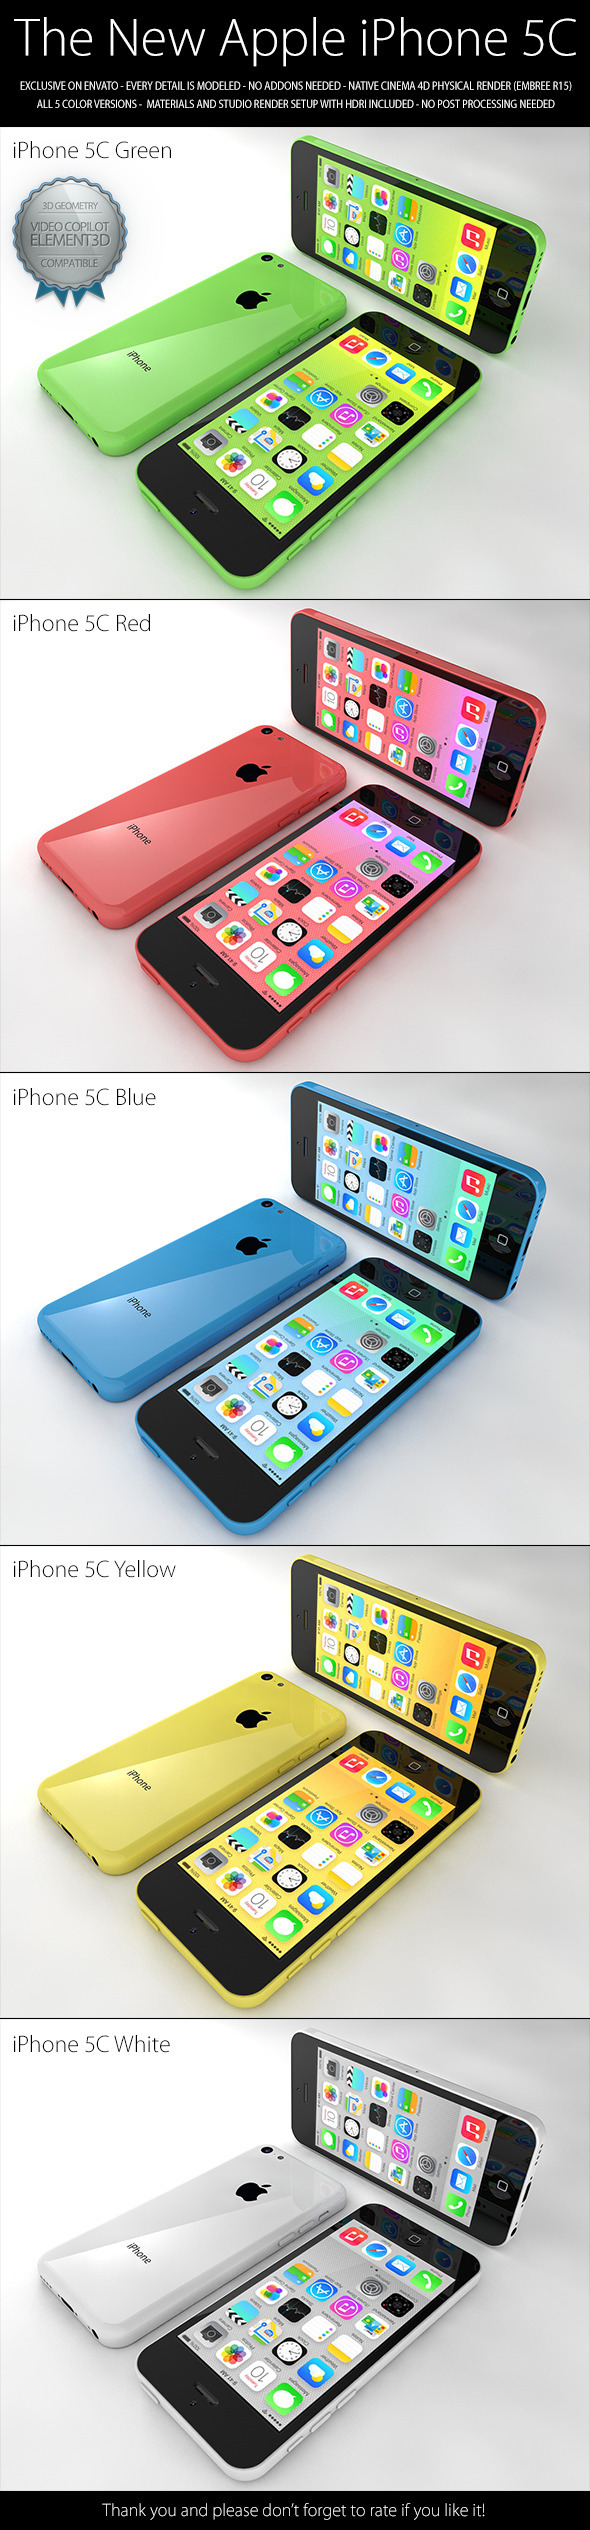 iPhone 5C - 3DOcean Item for Sale